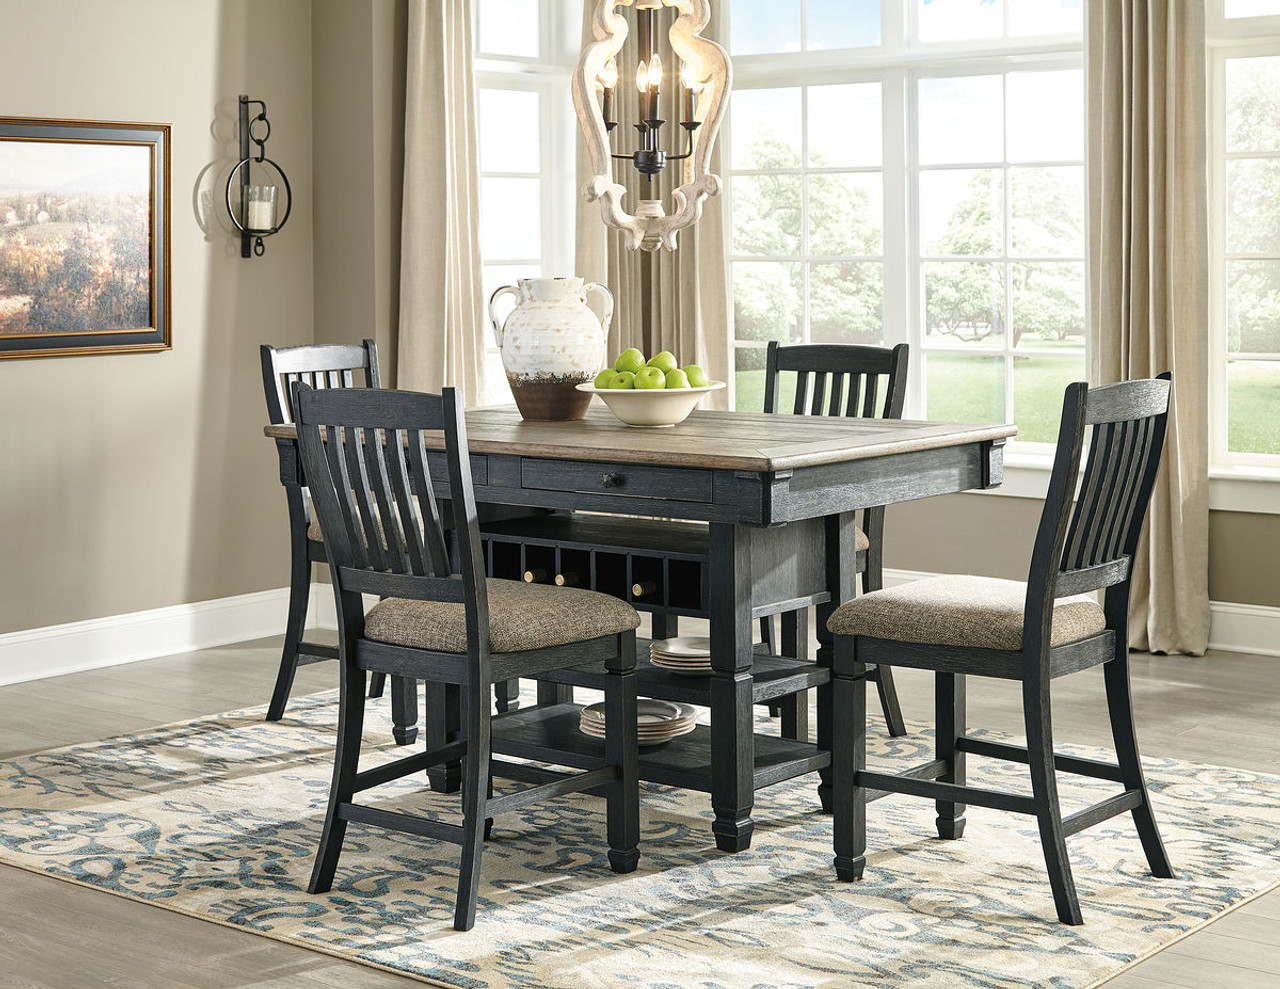 The Tyler Creek Blackgray 5 Pc Rectangular Counter Height Dining